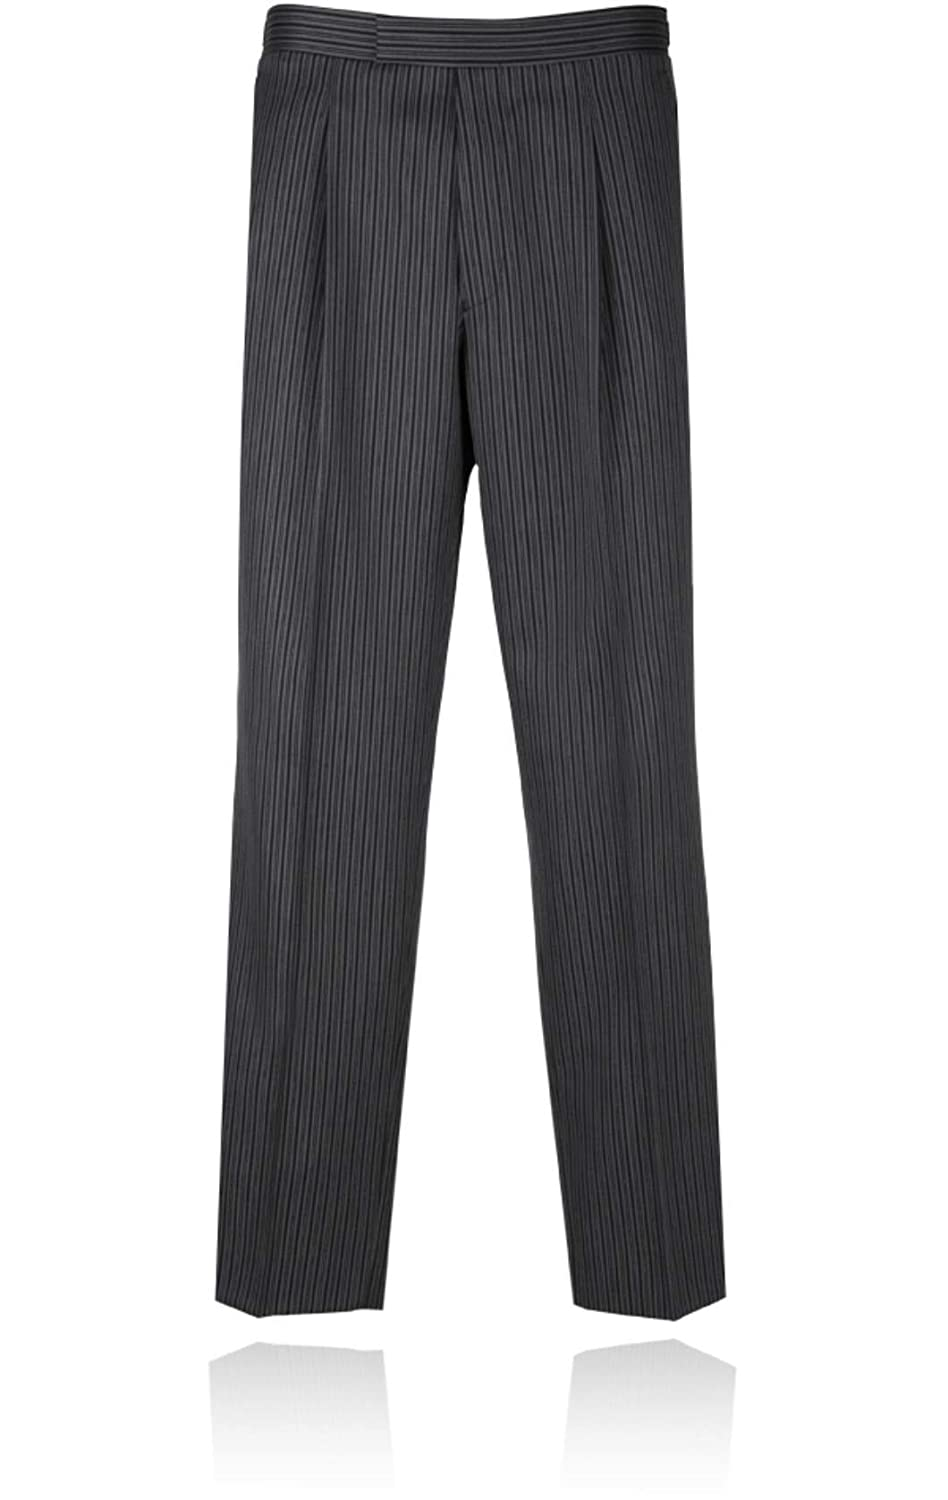 1930s Style Men's Pants Mens Black & Grey Striped Morning Suit Trousers £50.00 AT vintagedancer.com